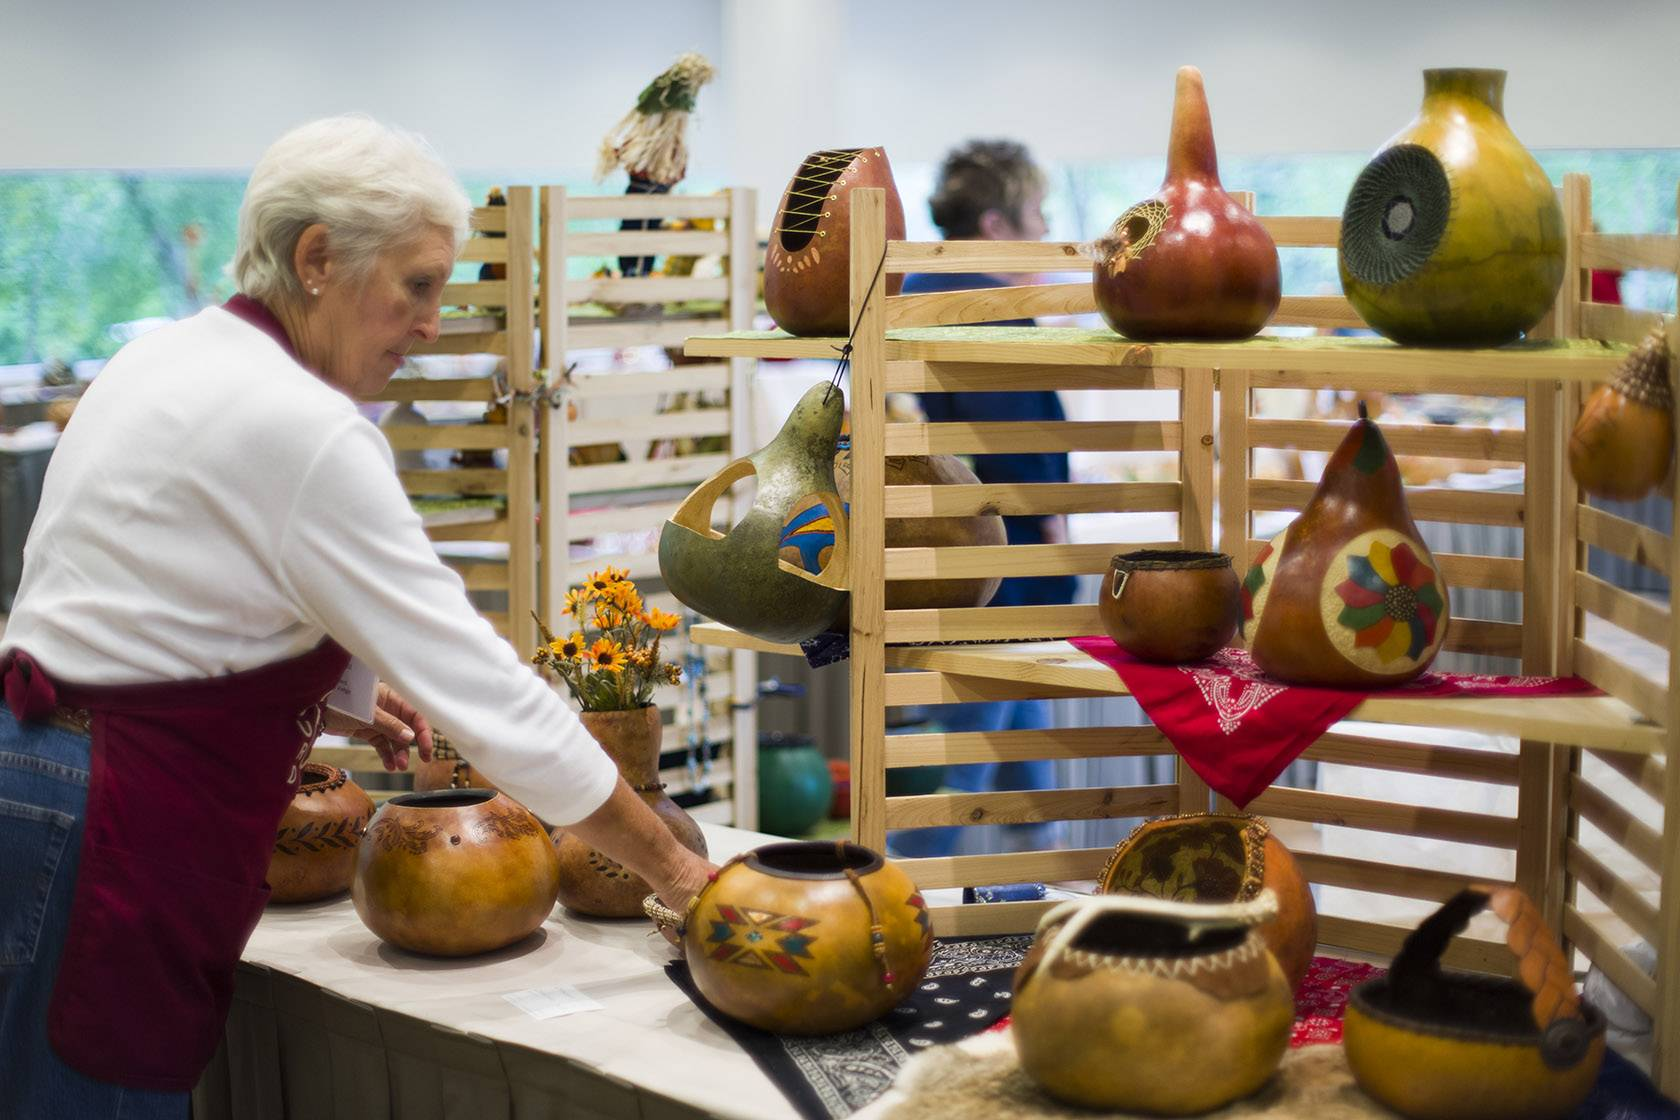 Artisans will offer a diverse variety of decorated gourds -- utilitarian birdhouses, whimsical folk art and fine art pieces -- at the Illinois Gourd Society Show & Sale.